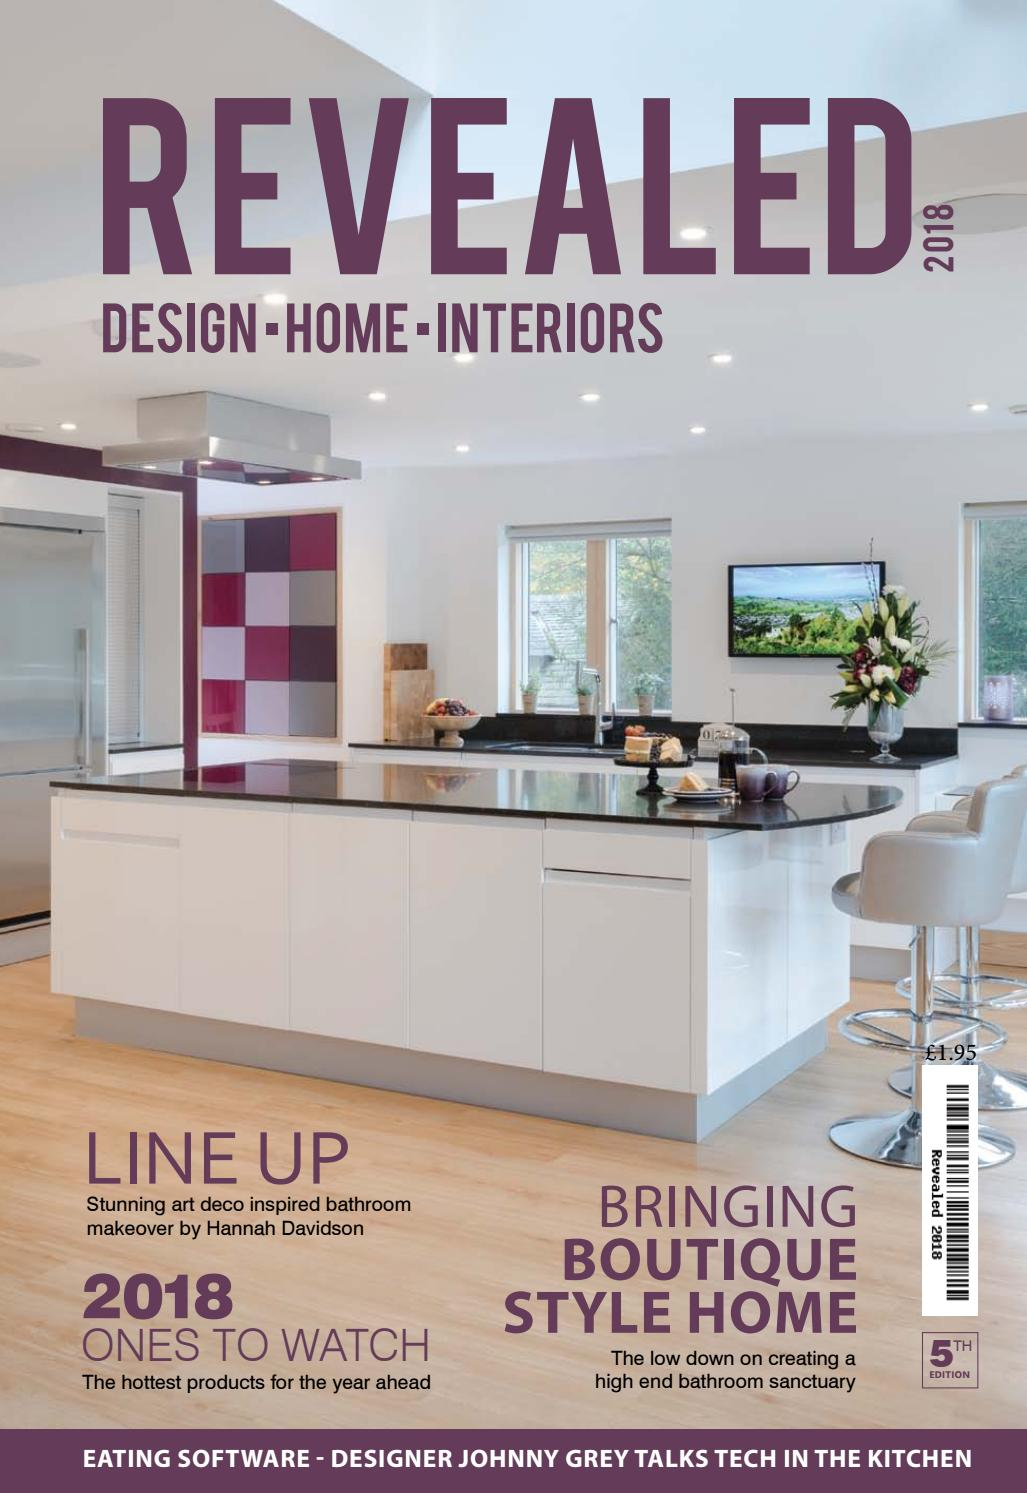 Exceptional Revealed Design Home Interiors Magazine 2018 By Lisa Melvin   Issuu